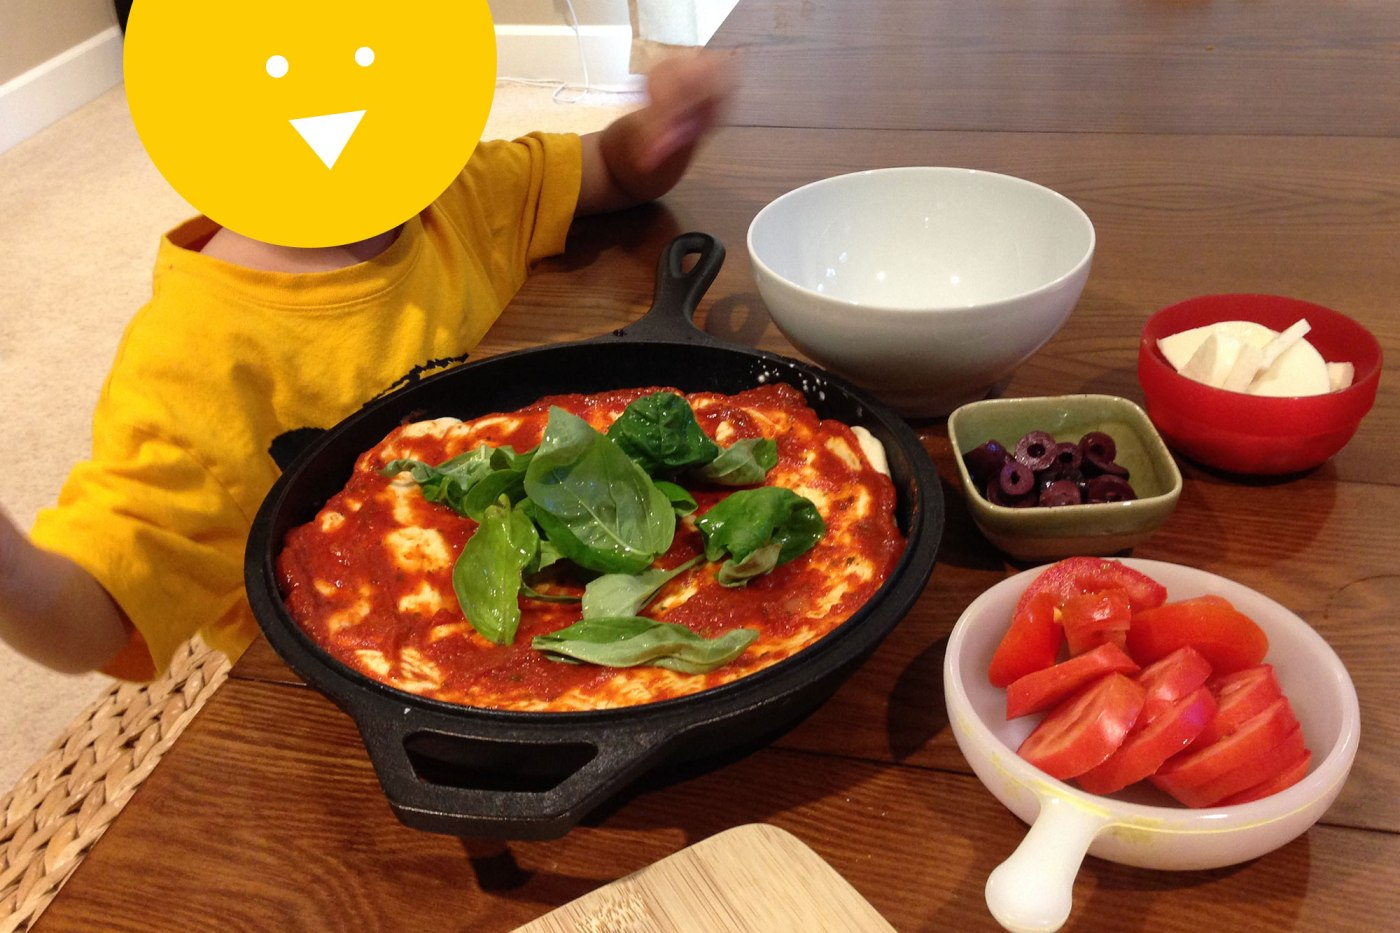 How to Make Pizza with Kids at Home